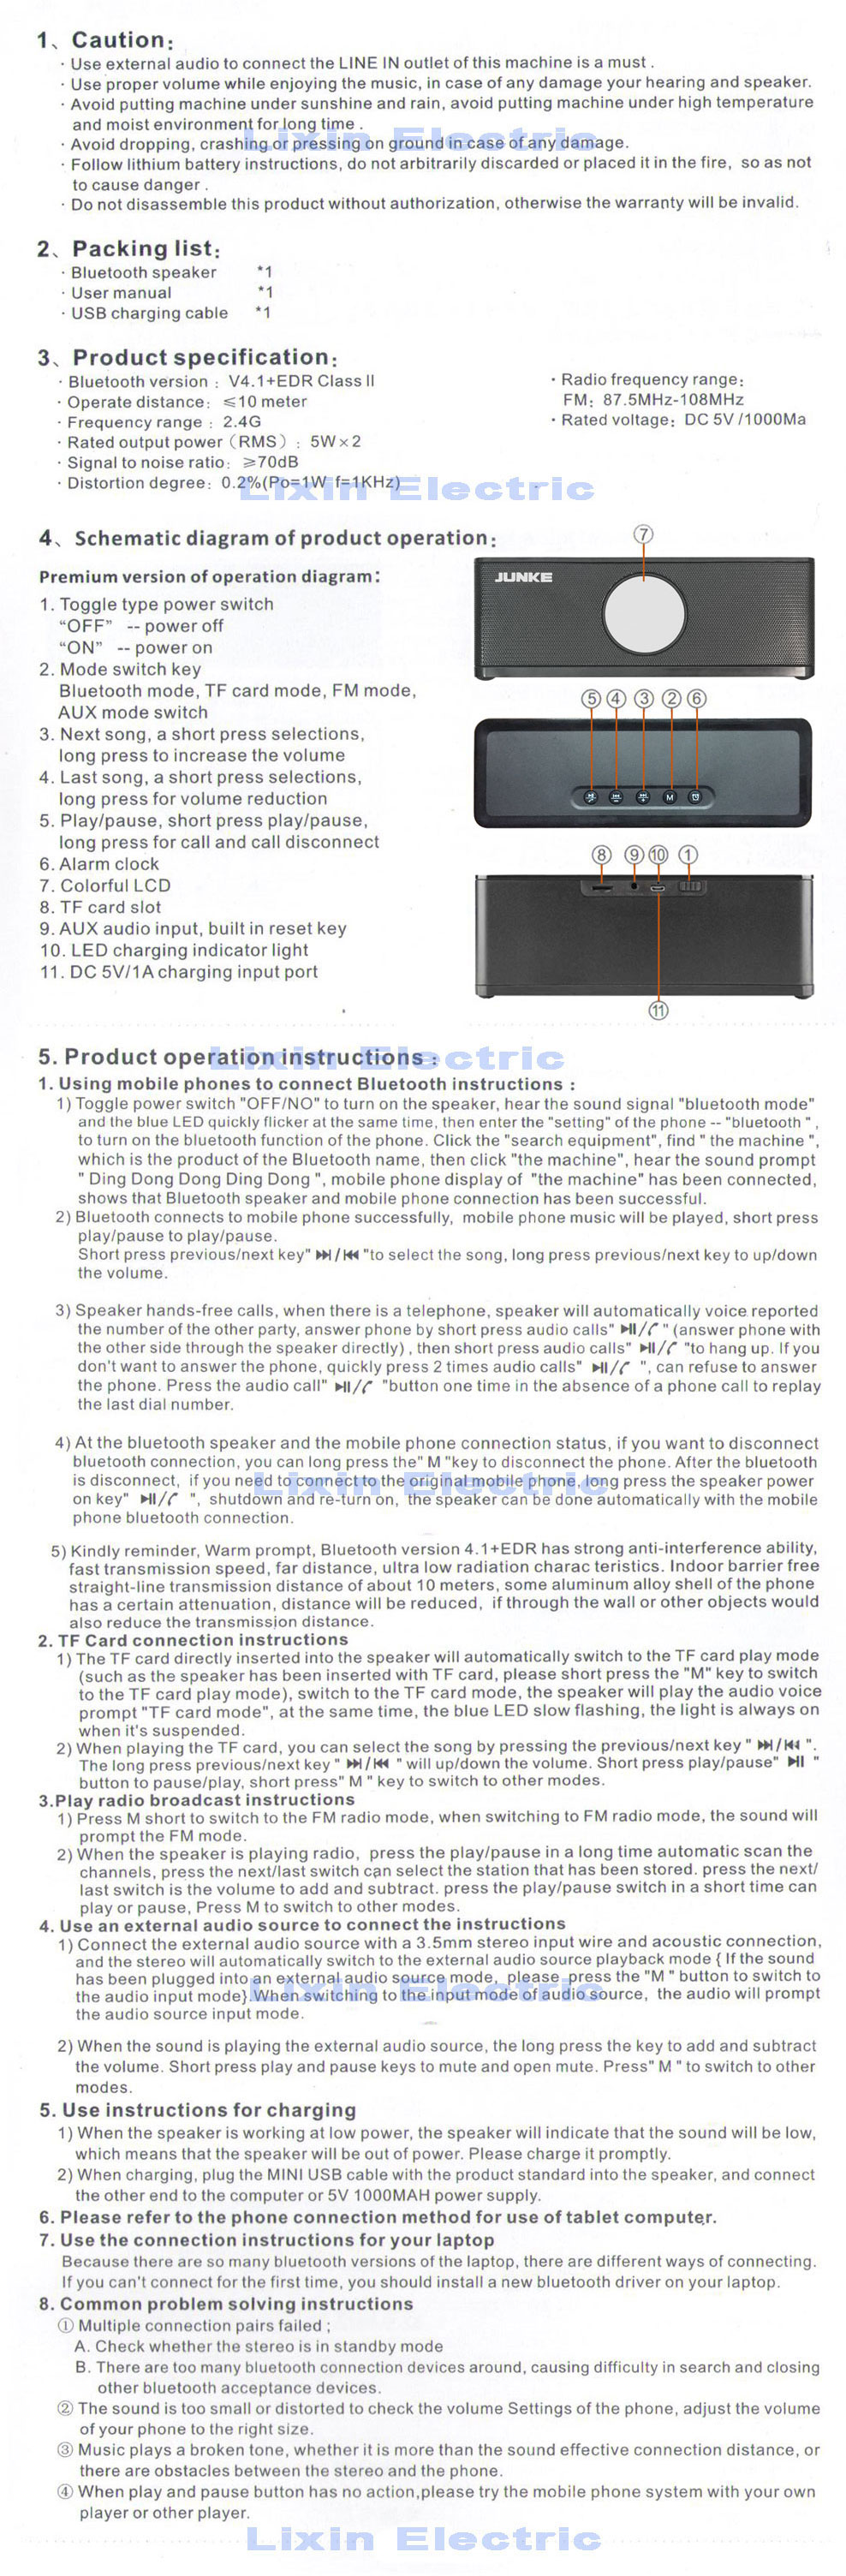 Portable Bluetooth Speaker Super Bass Wireless Stereo Speakers Circuit Schematics On Instrumental Cable Wiring Diagram Junke Pn 99 Instruction Manual